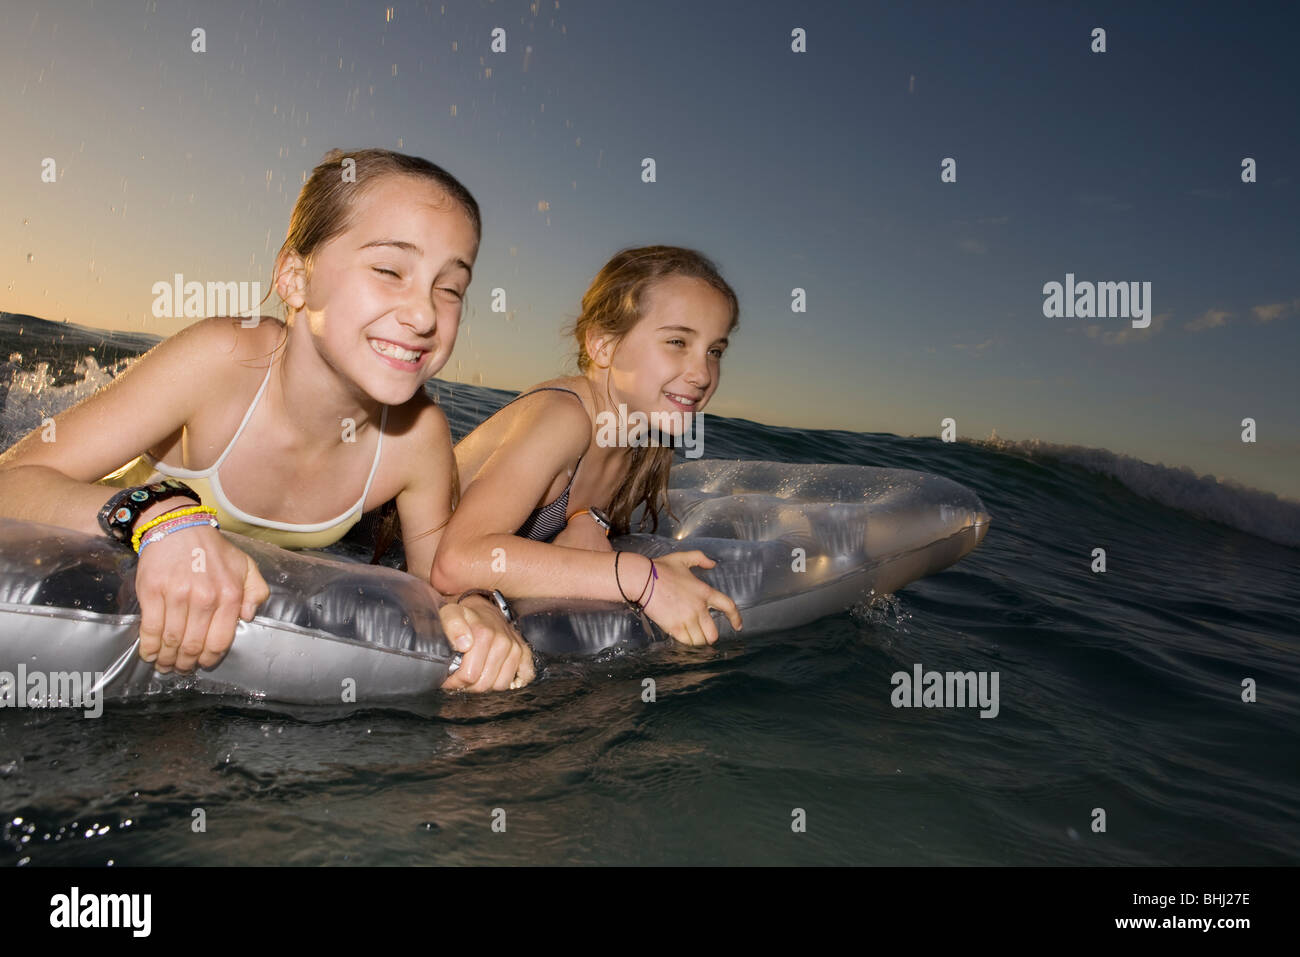 Hermanas gemelas wave surf en airbed Foto de stock